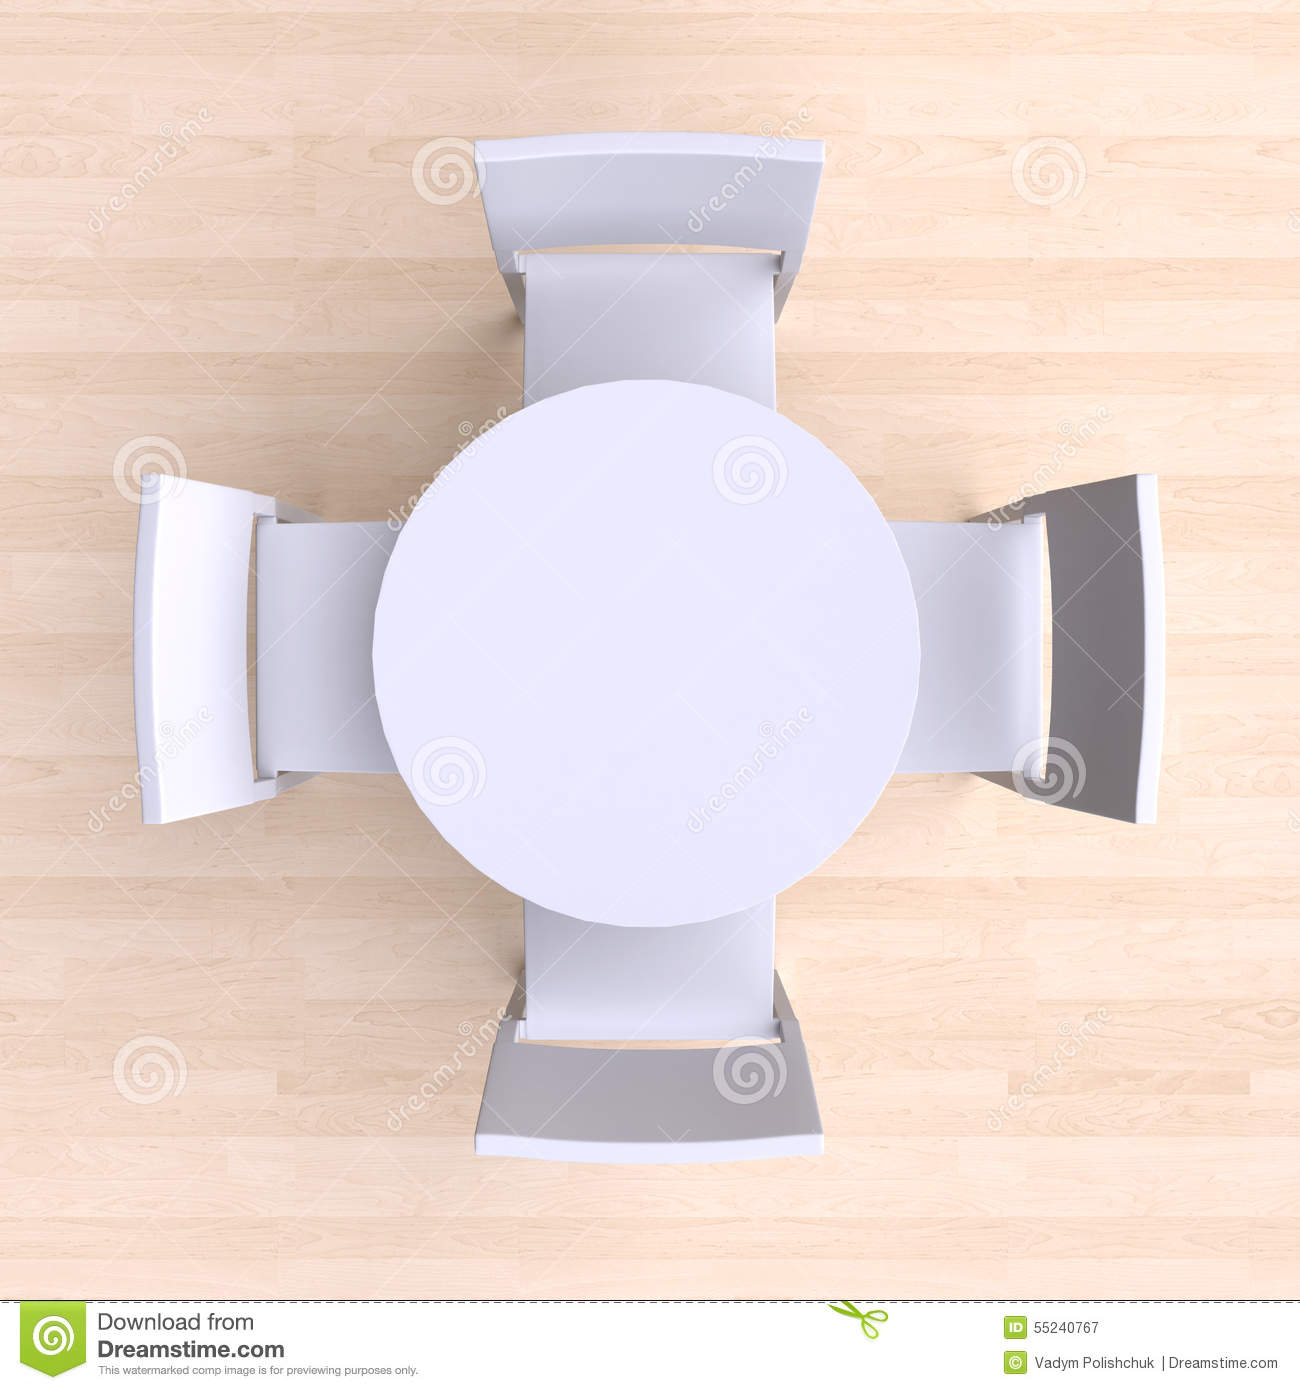 Table and chairs top view - Business Meeting In Top View Round Table With Four Chairs Royalty Free Stock Photography